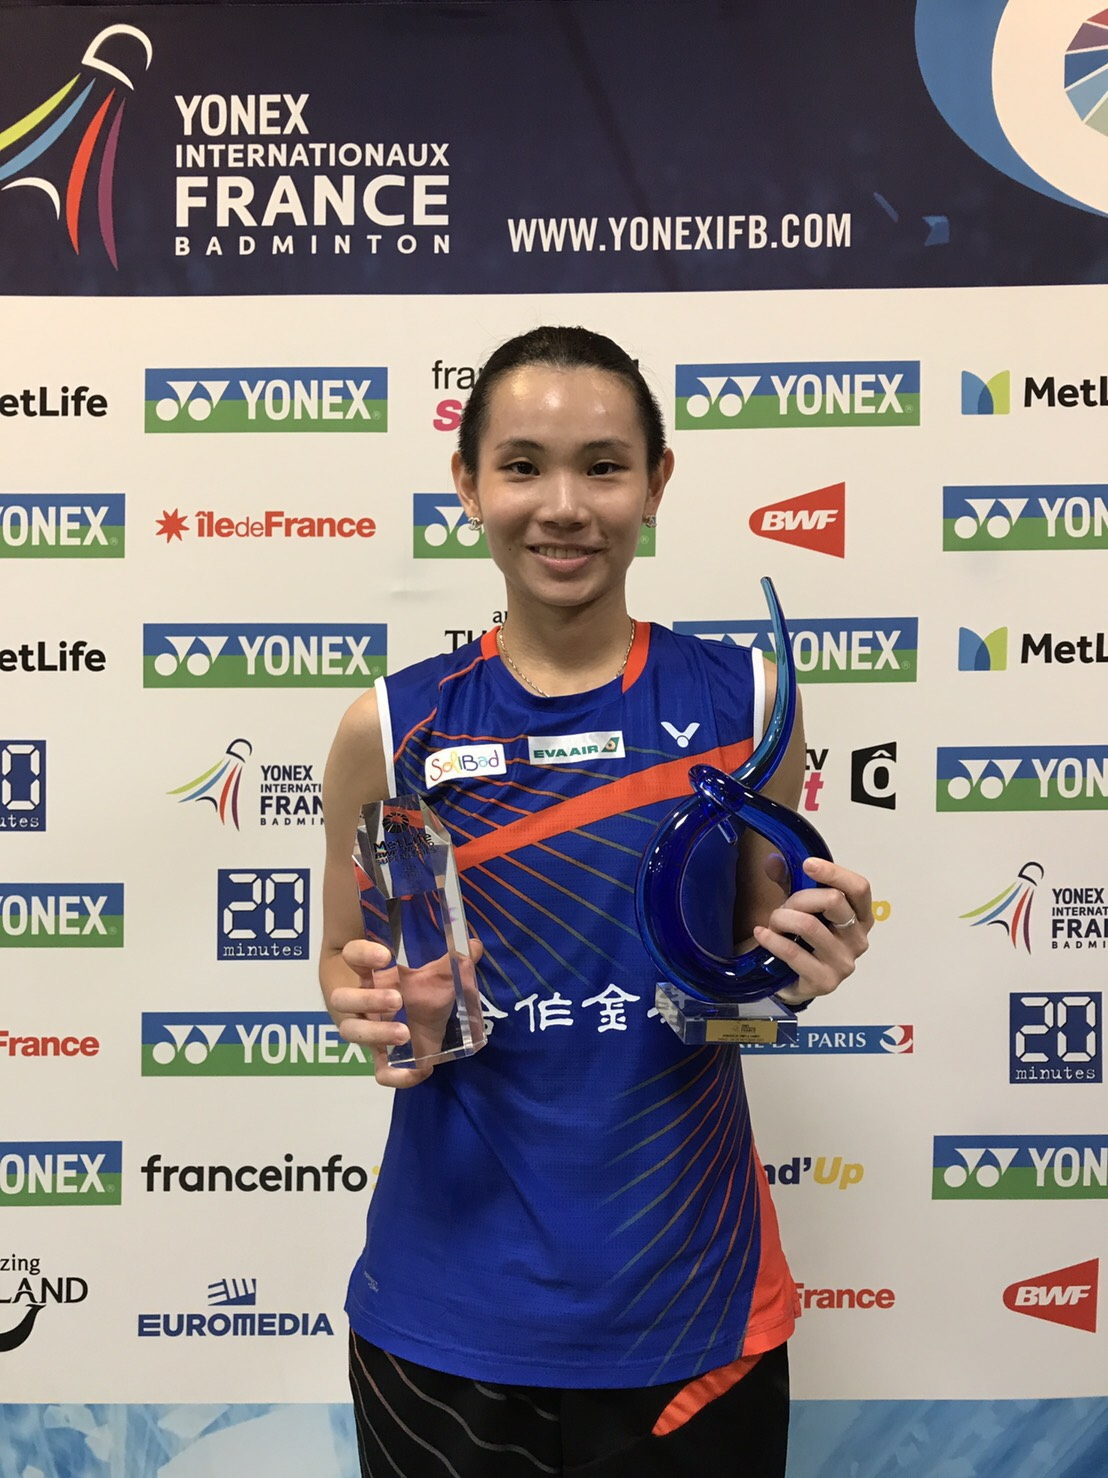 World No 1 Tai Tzu ying beats Akane Yamaguchi in French Open to